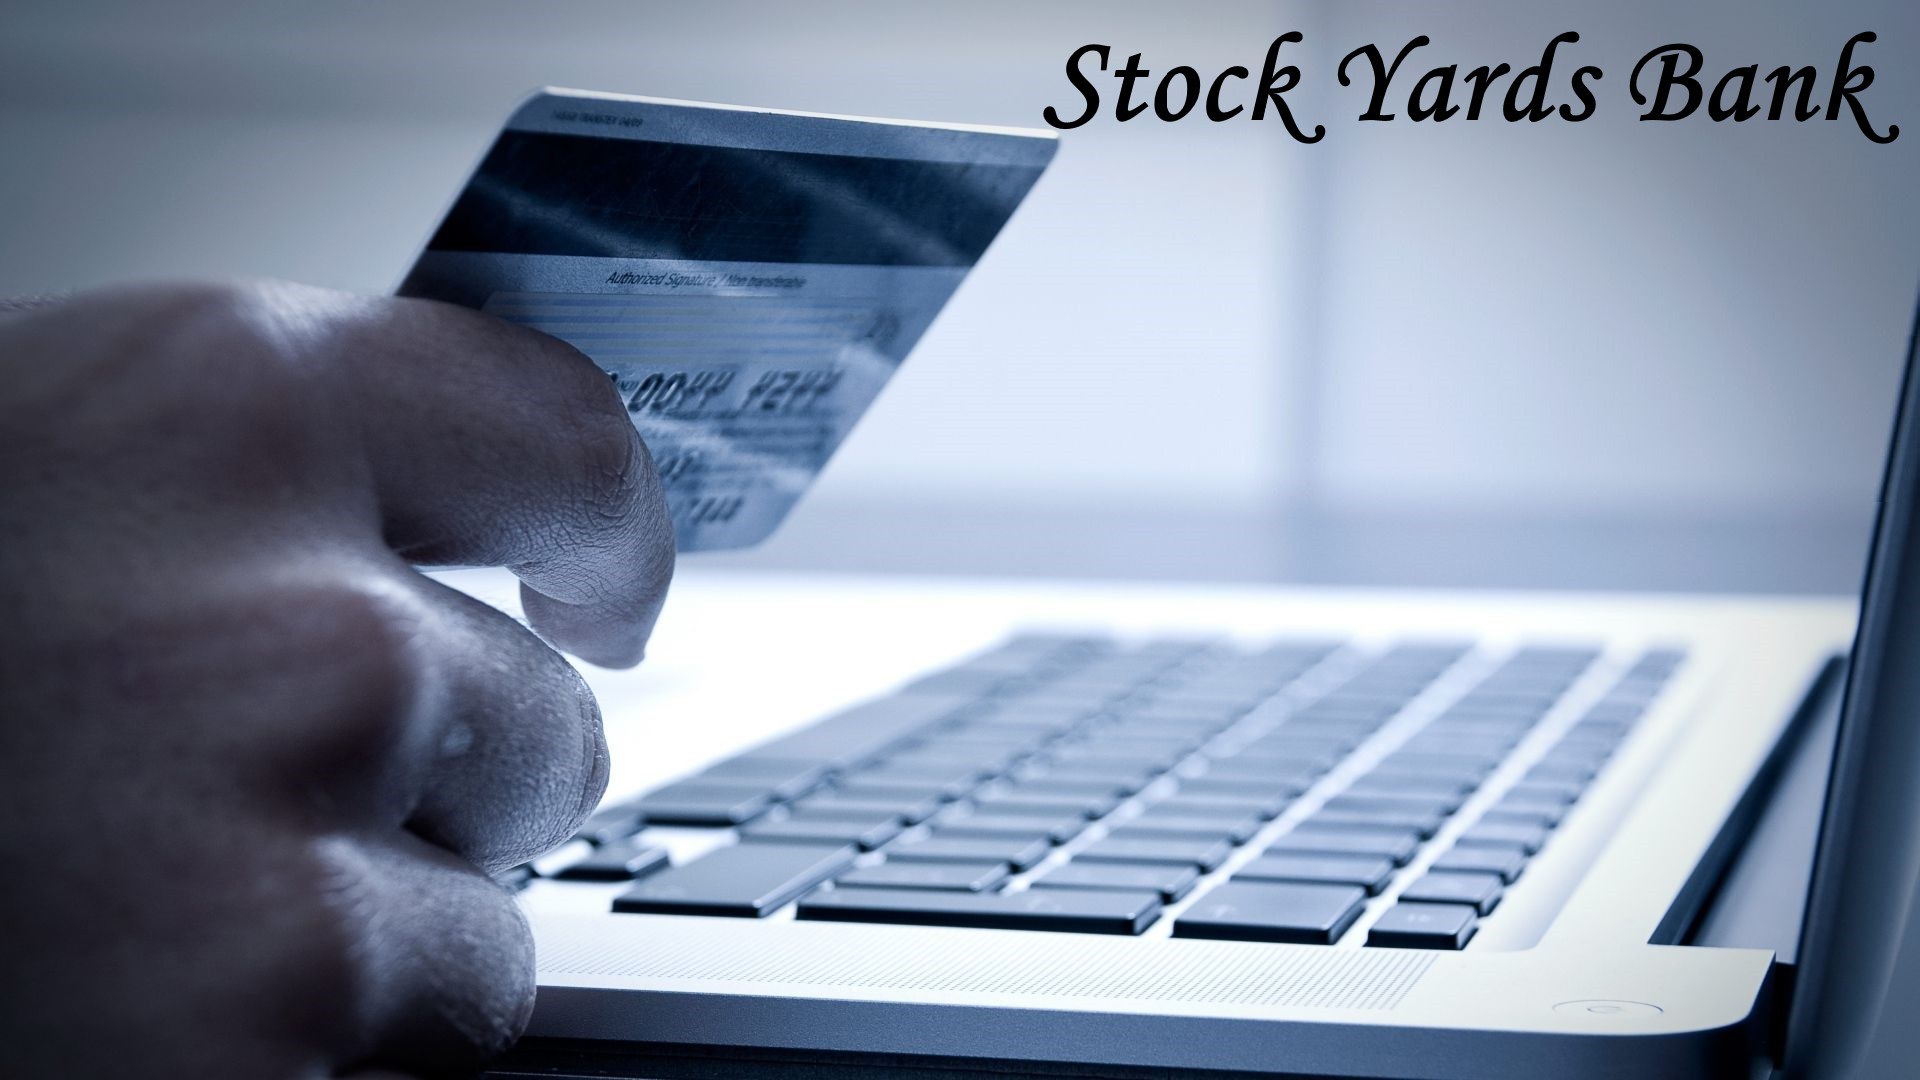 Know Your Stock Yards Bank Routing Number